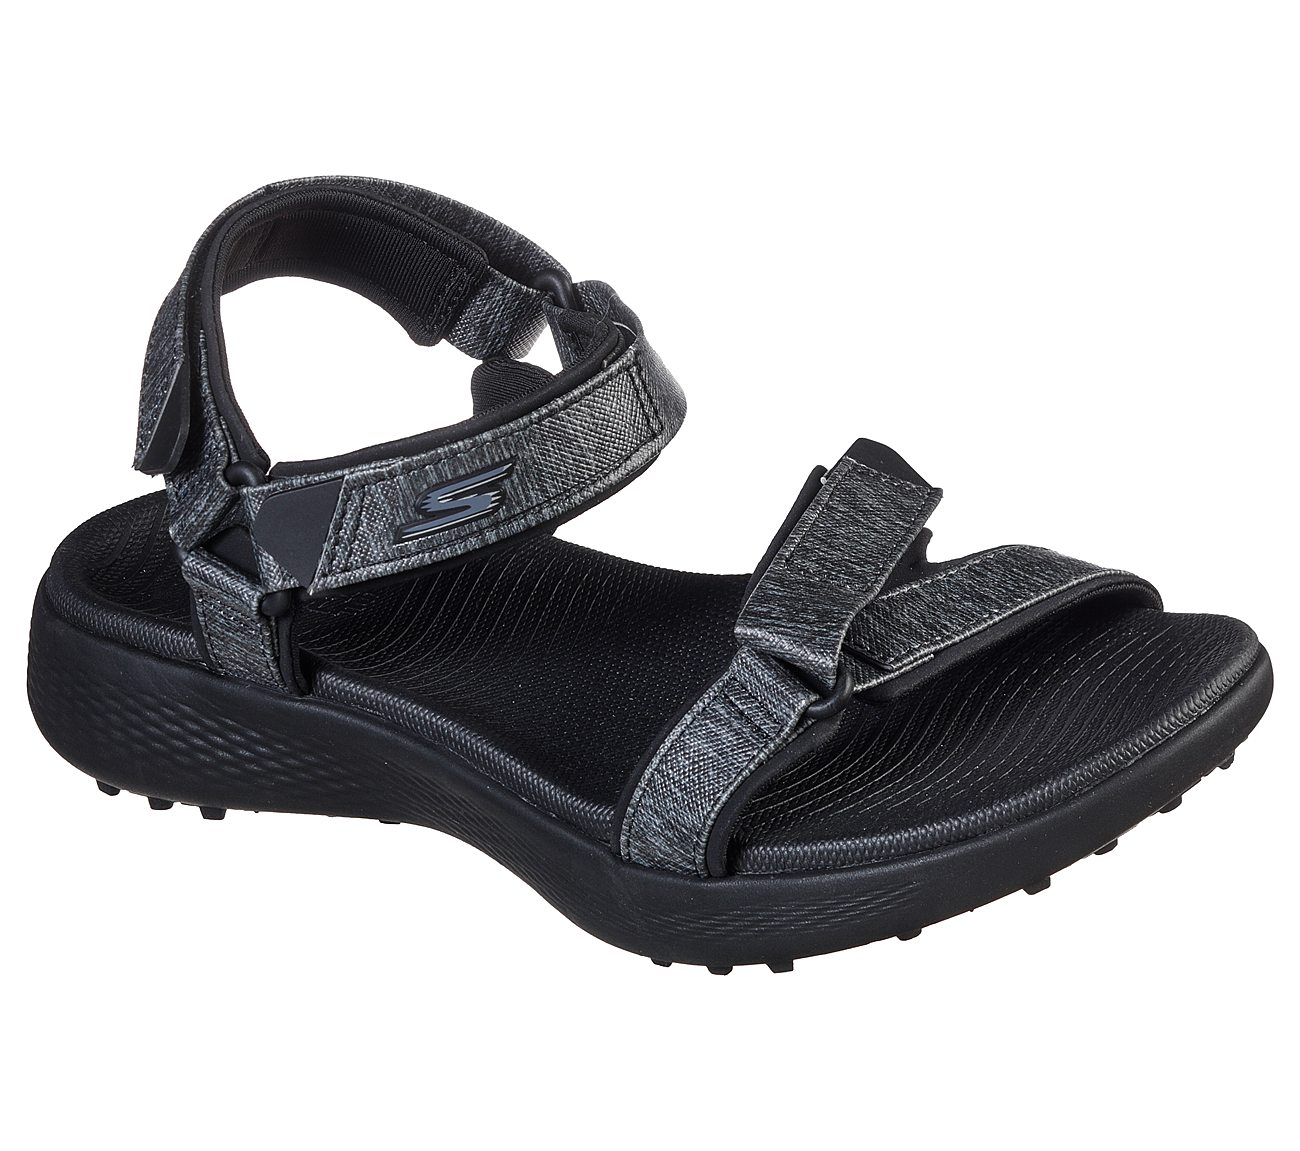 Skechers Women's Go Golf 600 Black Sandal